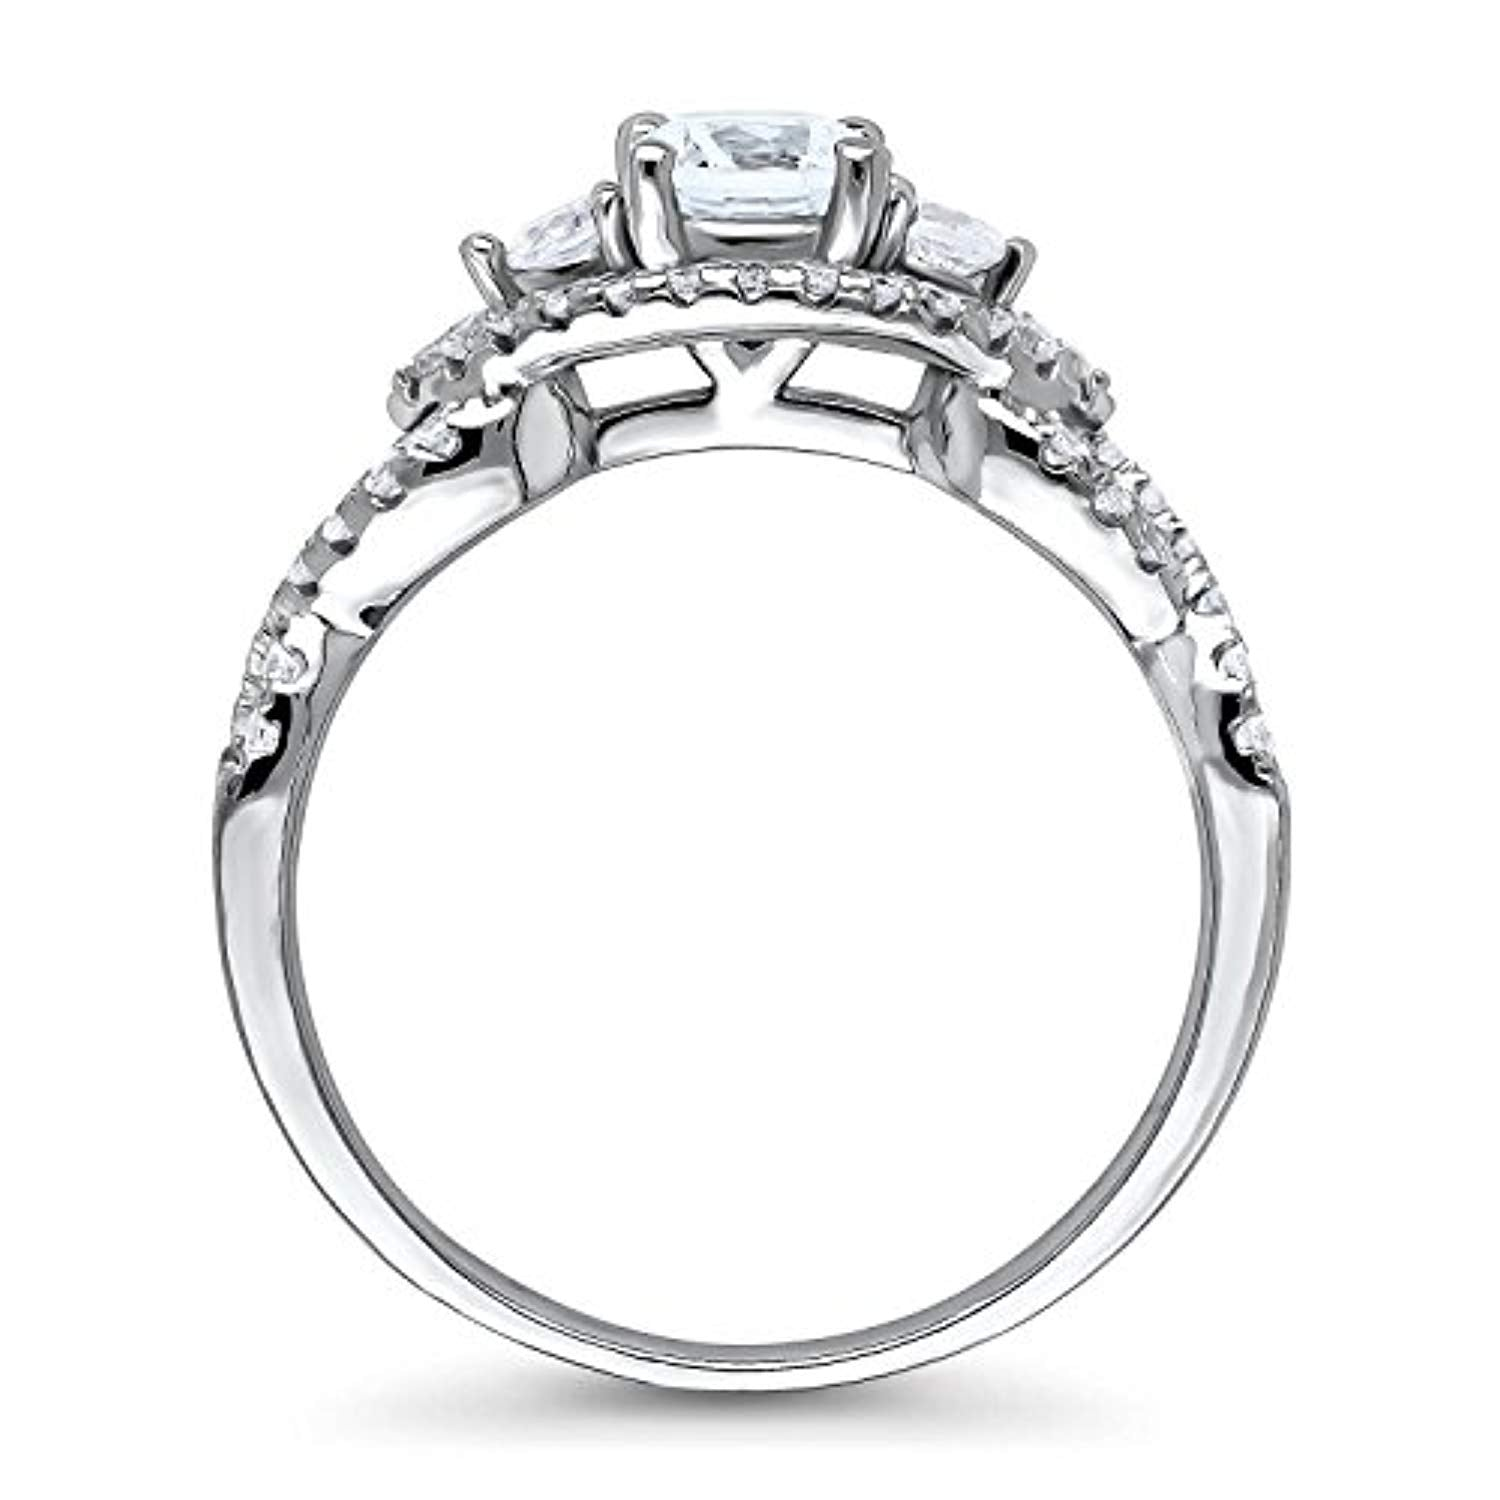 Rhodium Plated Sterling Silver 3-Stone Woven Promise Engagement Ring Made with Swarovski Zirconia Round